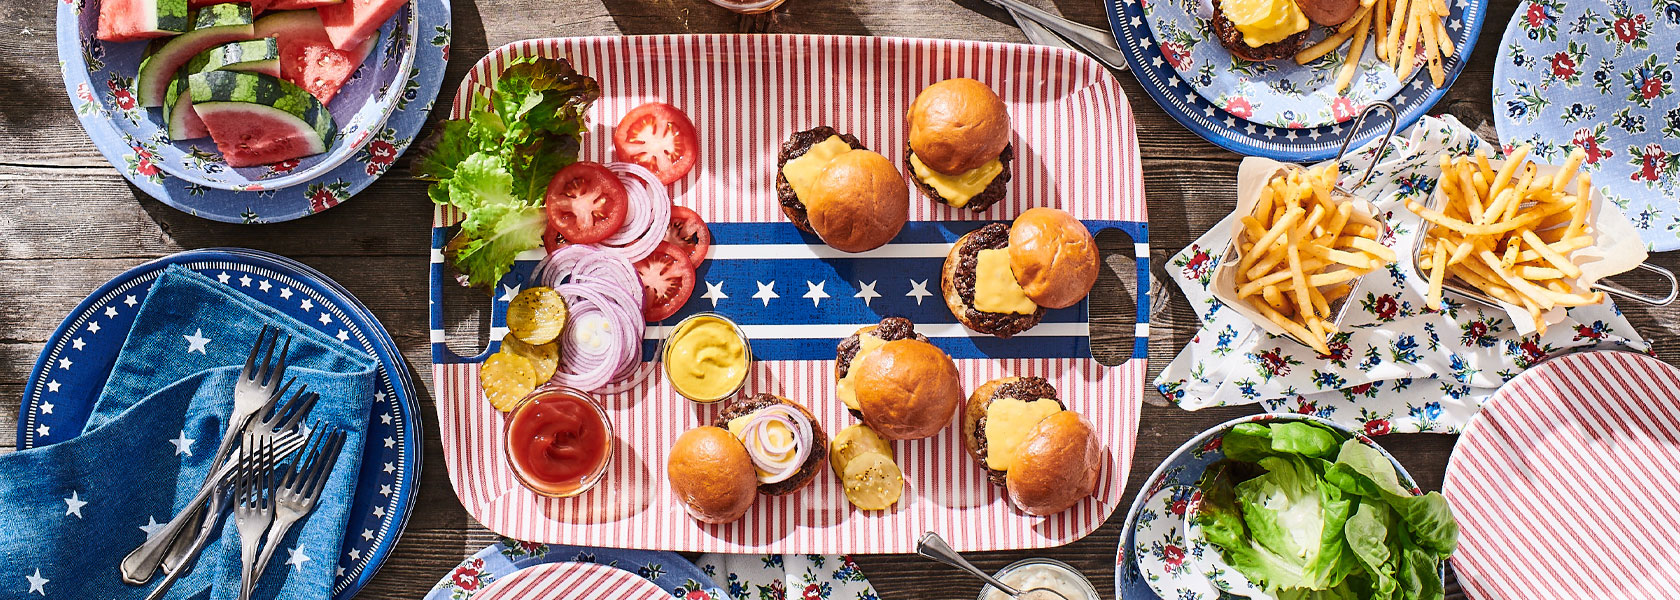 Summerhouse blue floral outdoor dinnerware on wooden table with stars and stripes platter with burgers